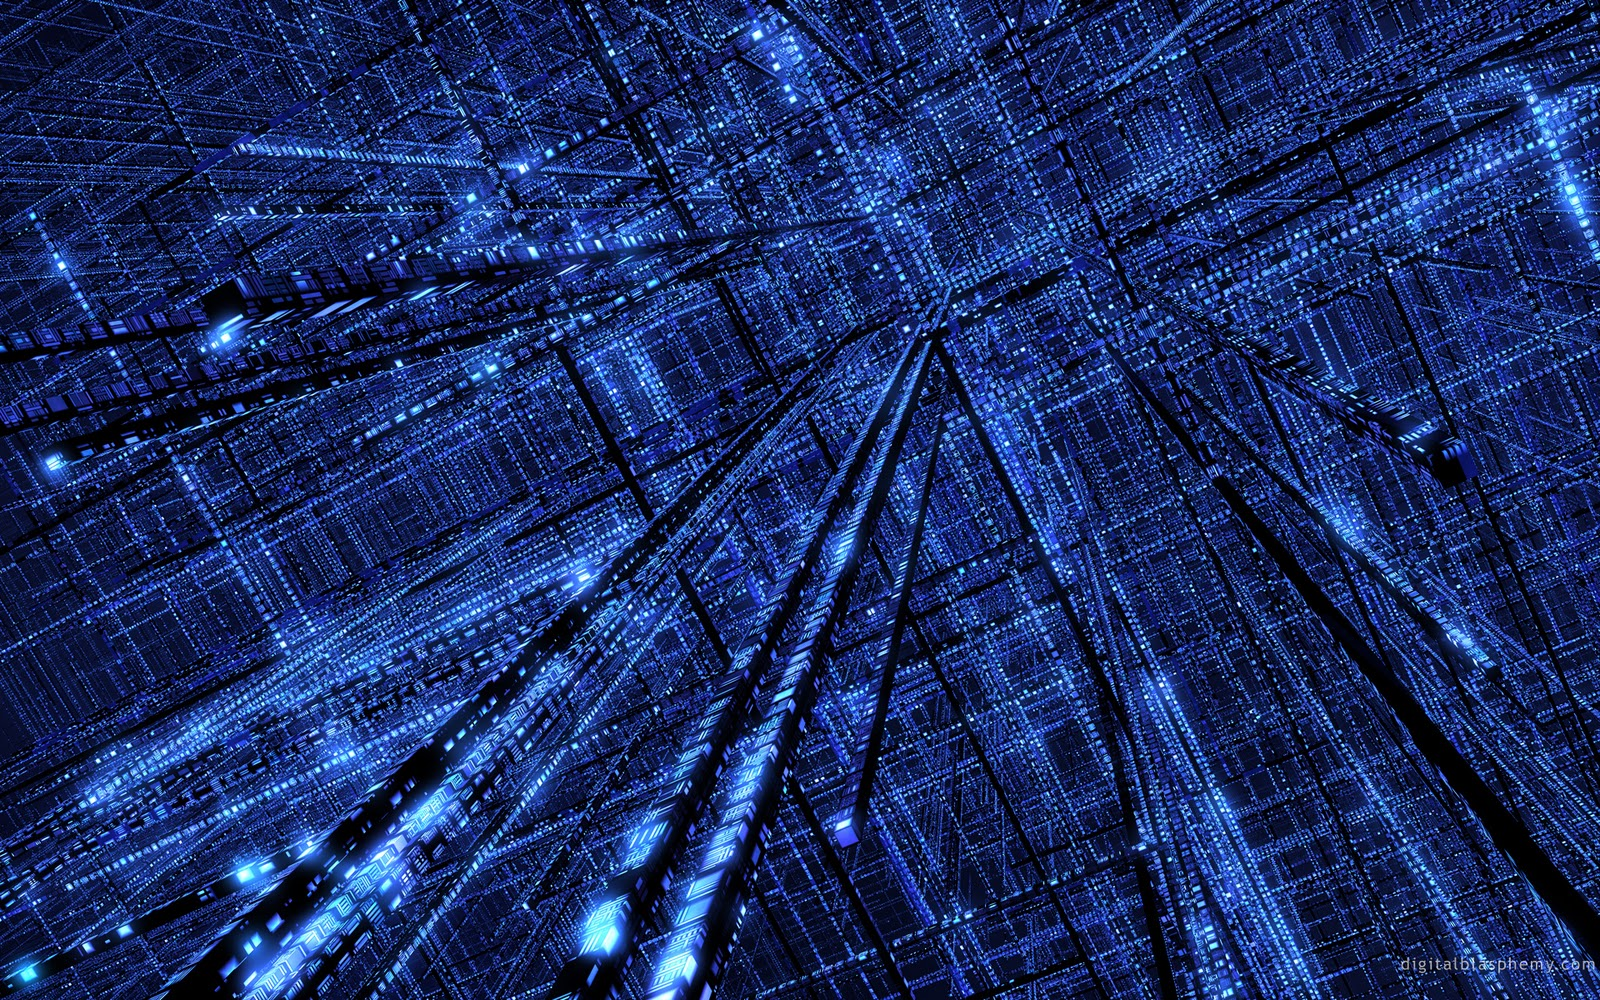 Free Wallpaper Archive: 25 Math/Science/Technology Wallpapers